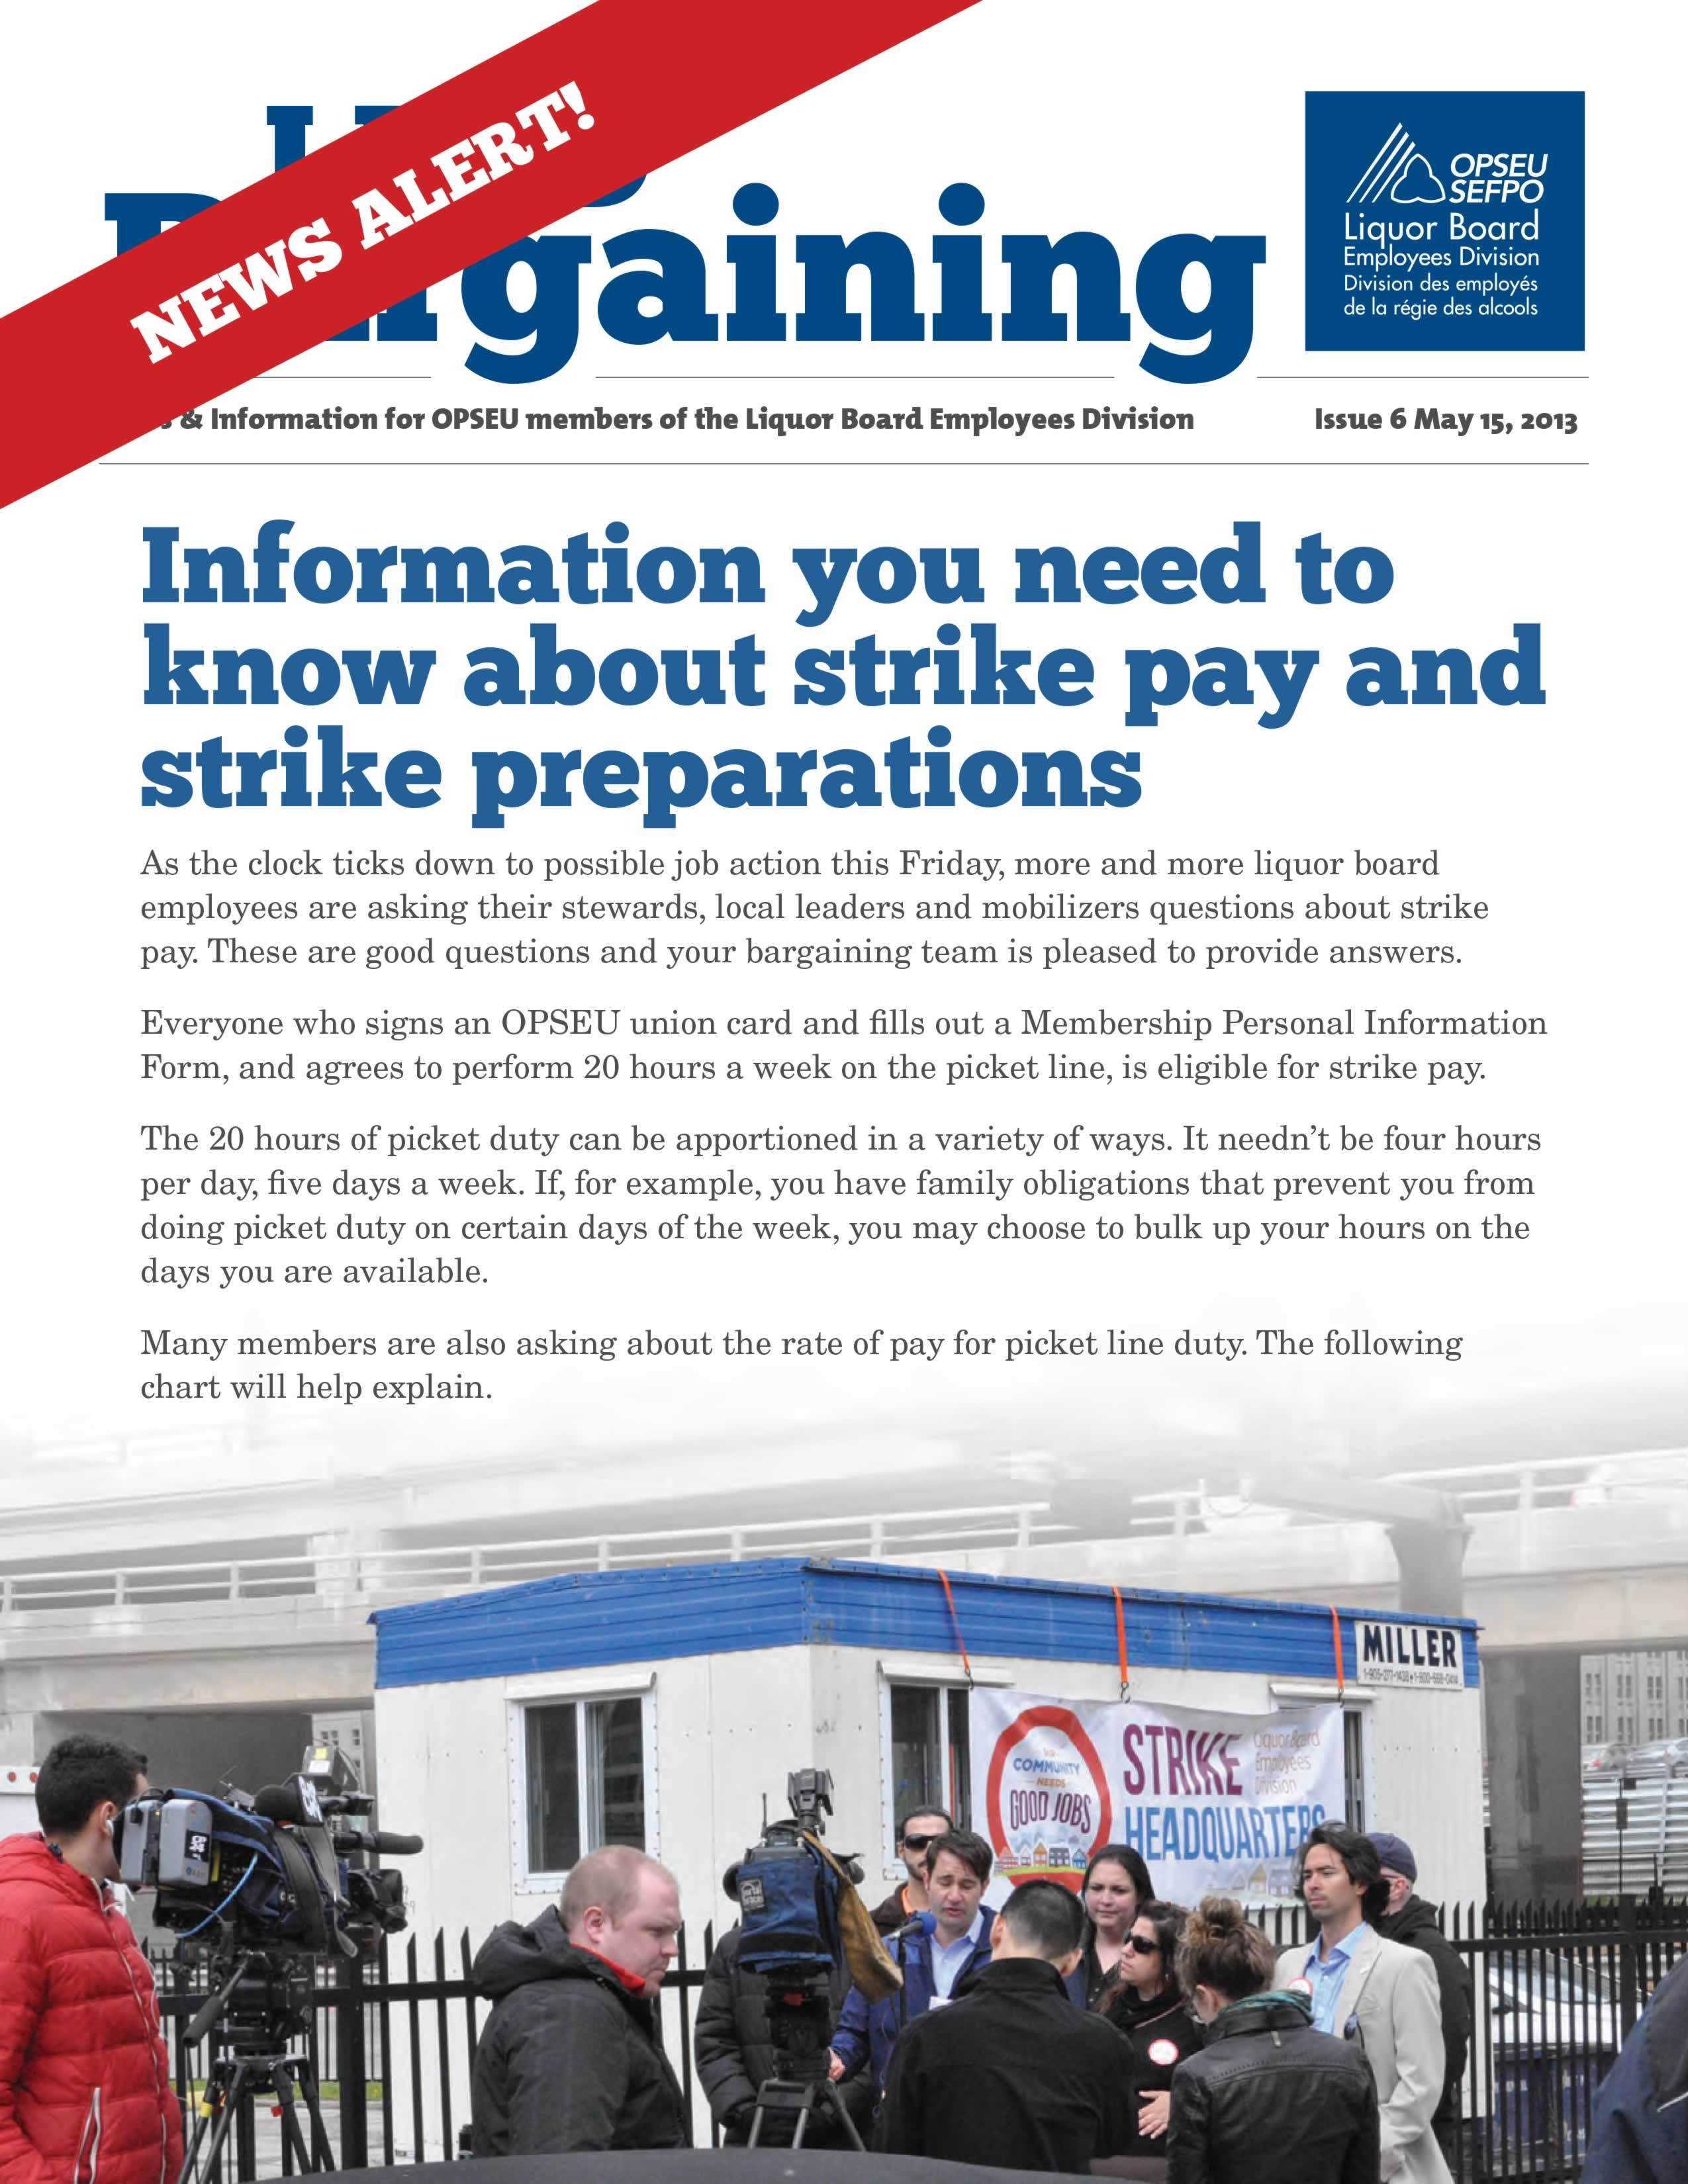 2013 Collective Bargaining: News Alert Issue #6